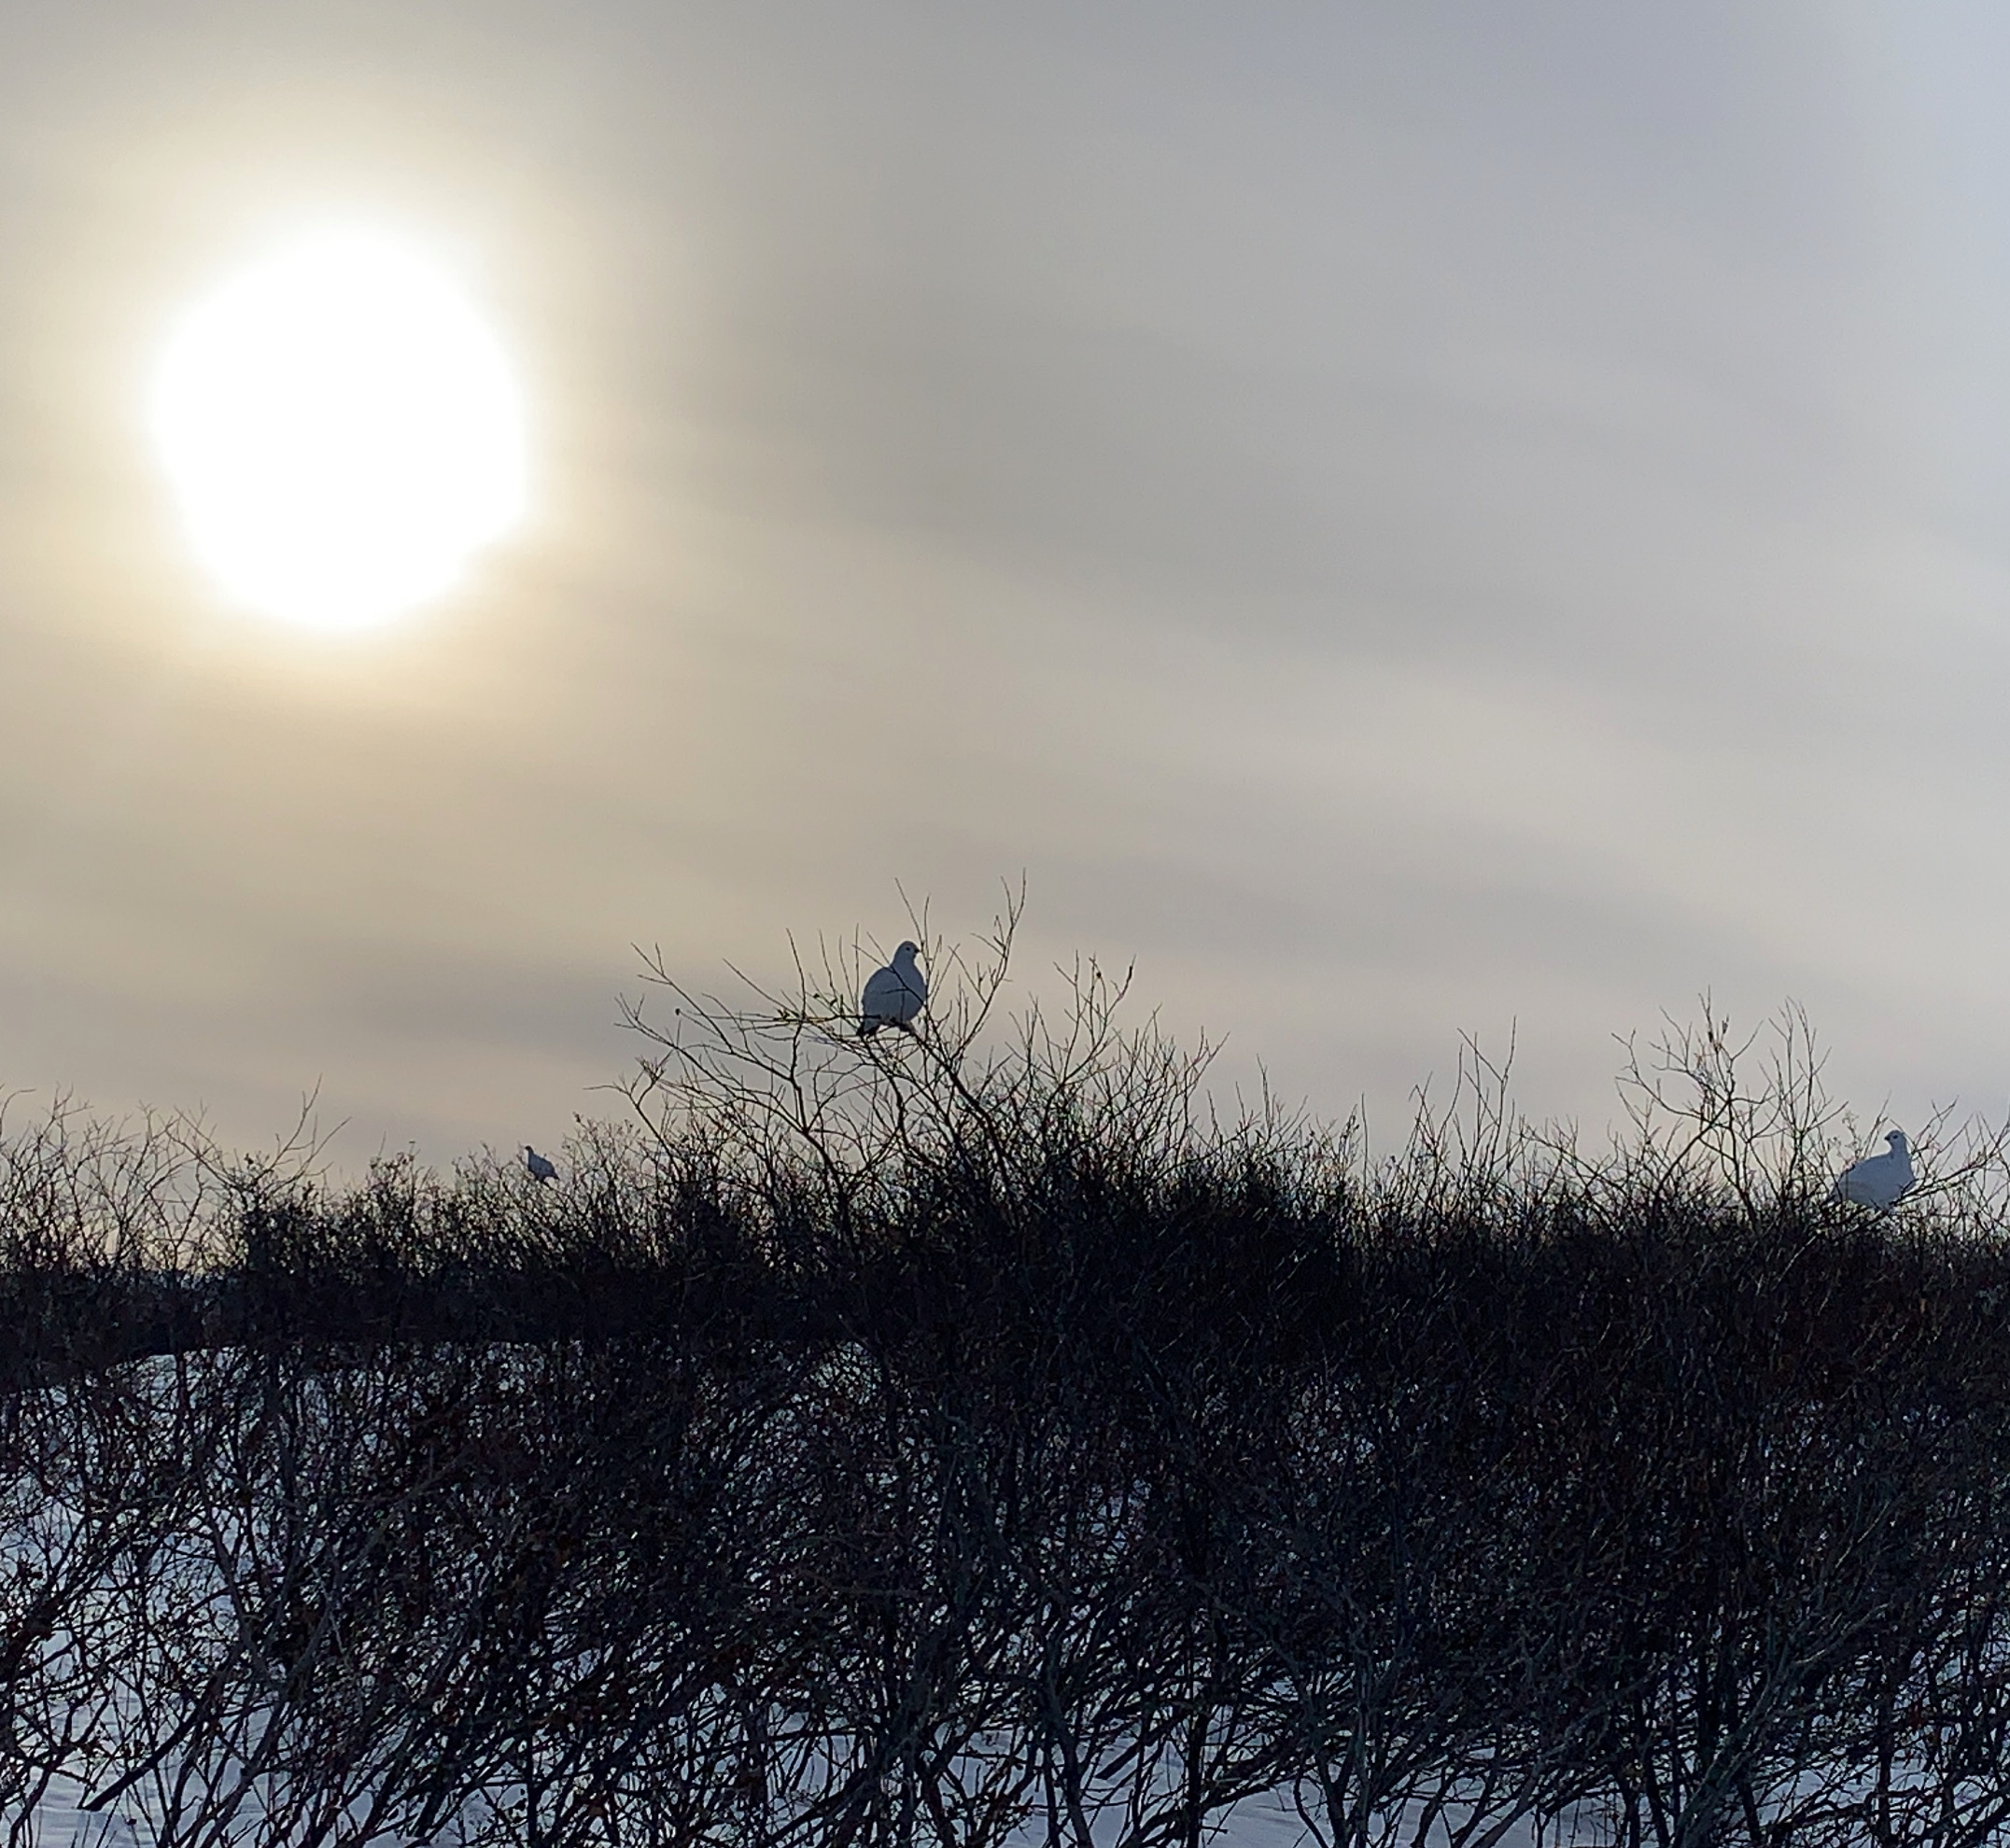 Malaya Qaunirq Chapman spotted these ptarmigans while out hunting with her partner, family and friends on Saturday outside Kuujjuaq. (Photo by Malaya Qaunirq Chapman)